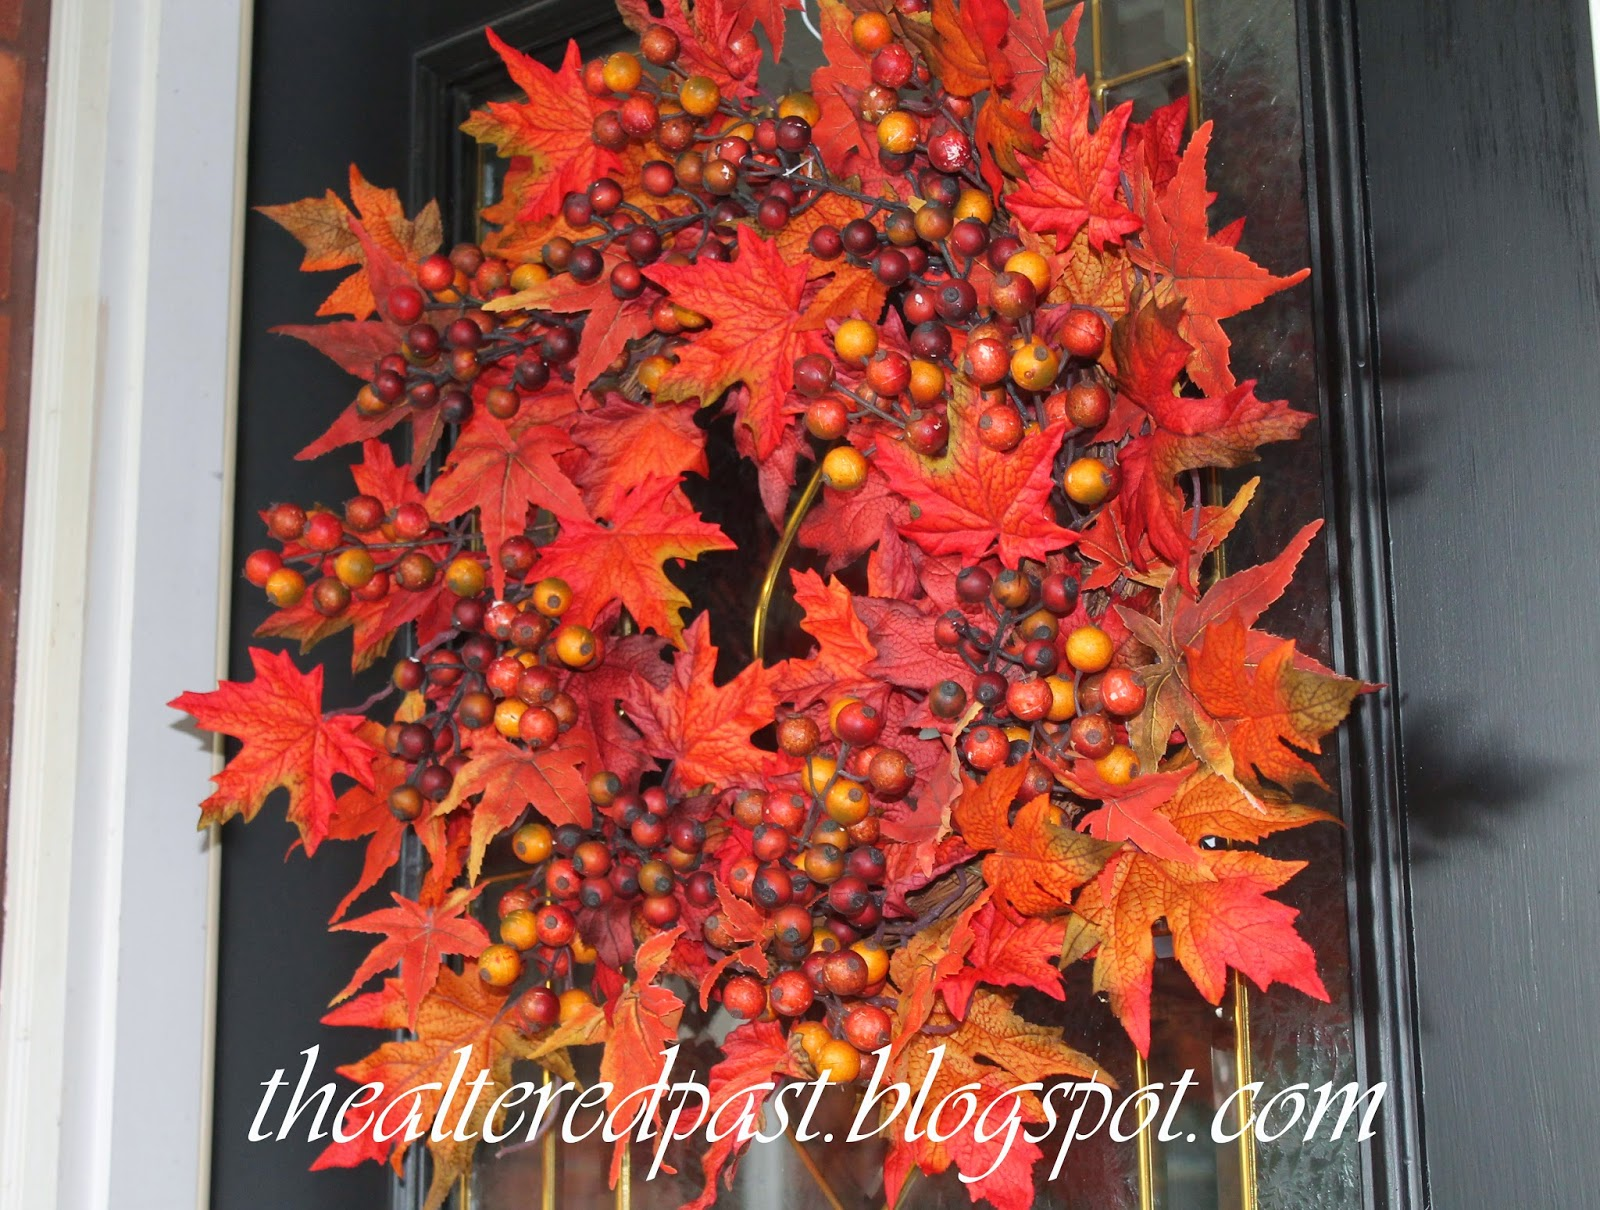 A Forte S Blog Of Spain Hill Farm Front Porch Fall Decor